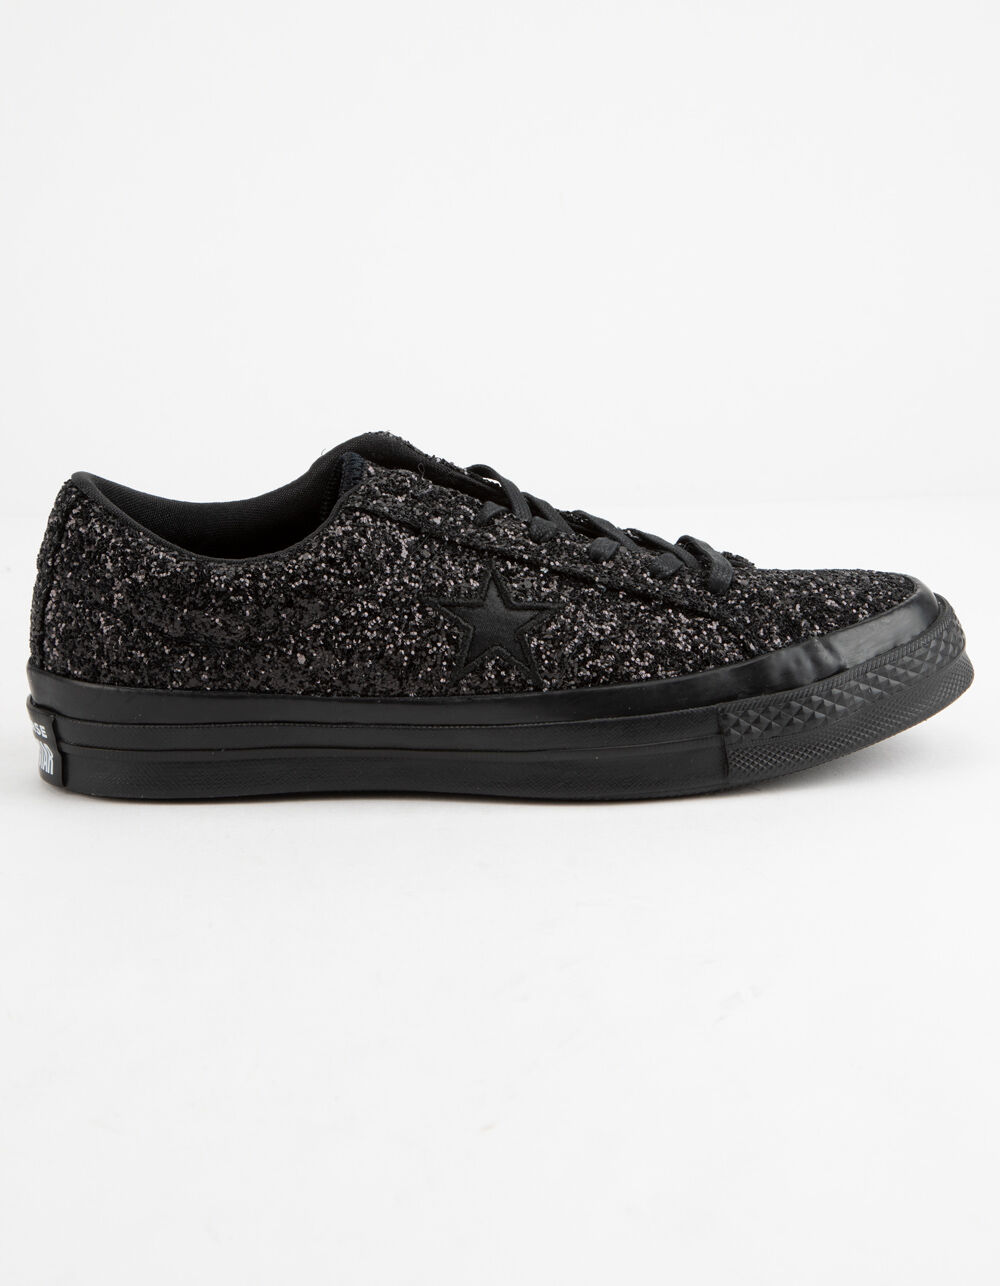 CONVERSE ONE STAR OX GLITTER BLACK SHOES